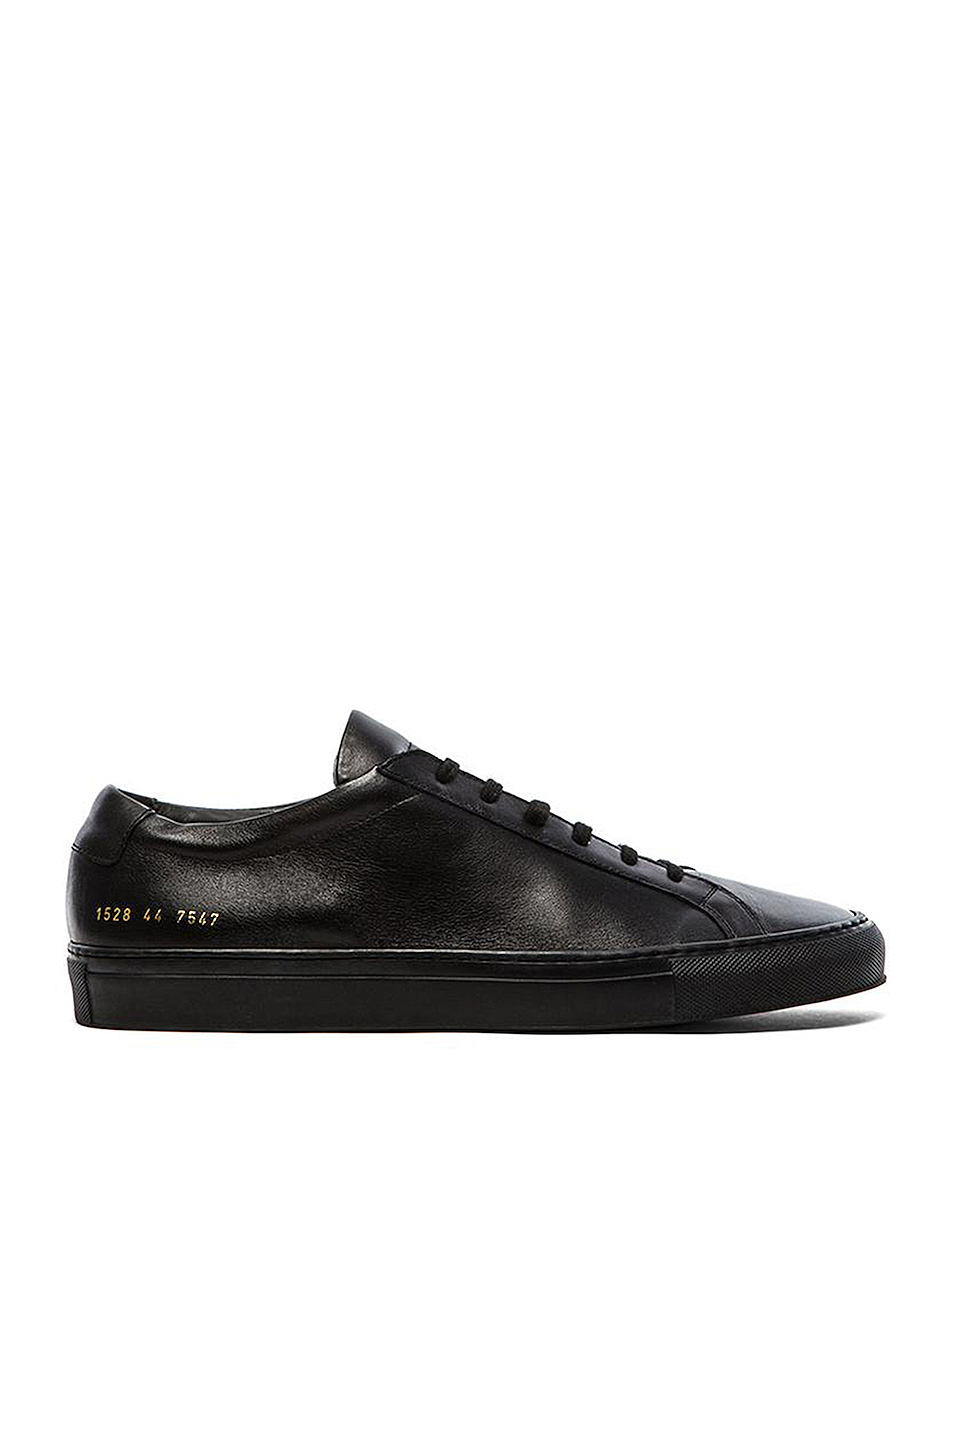 Common Projects Original Achilles Low Tops in Black